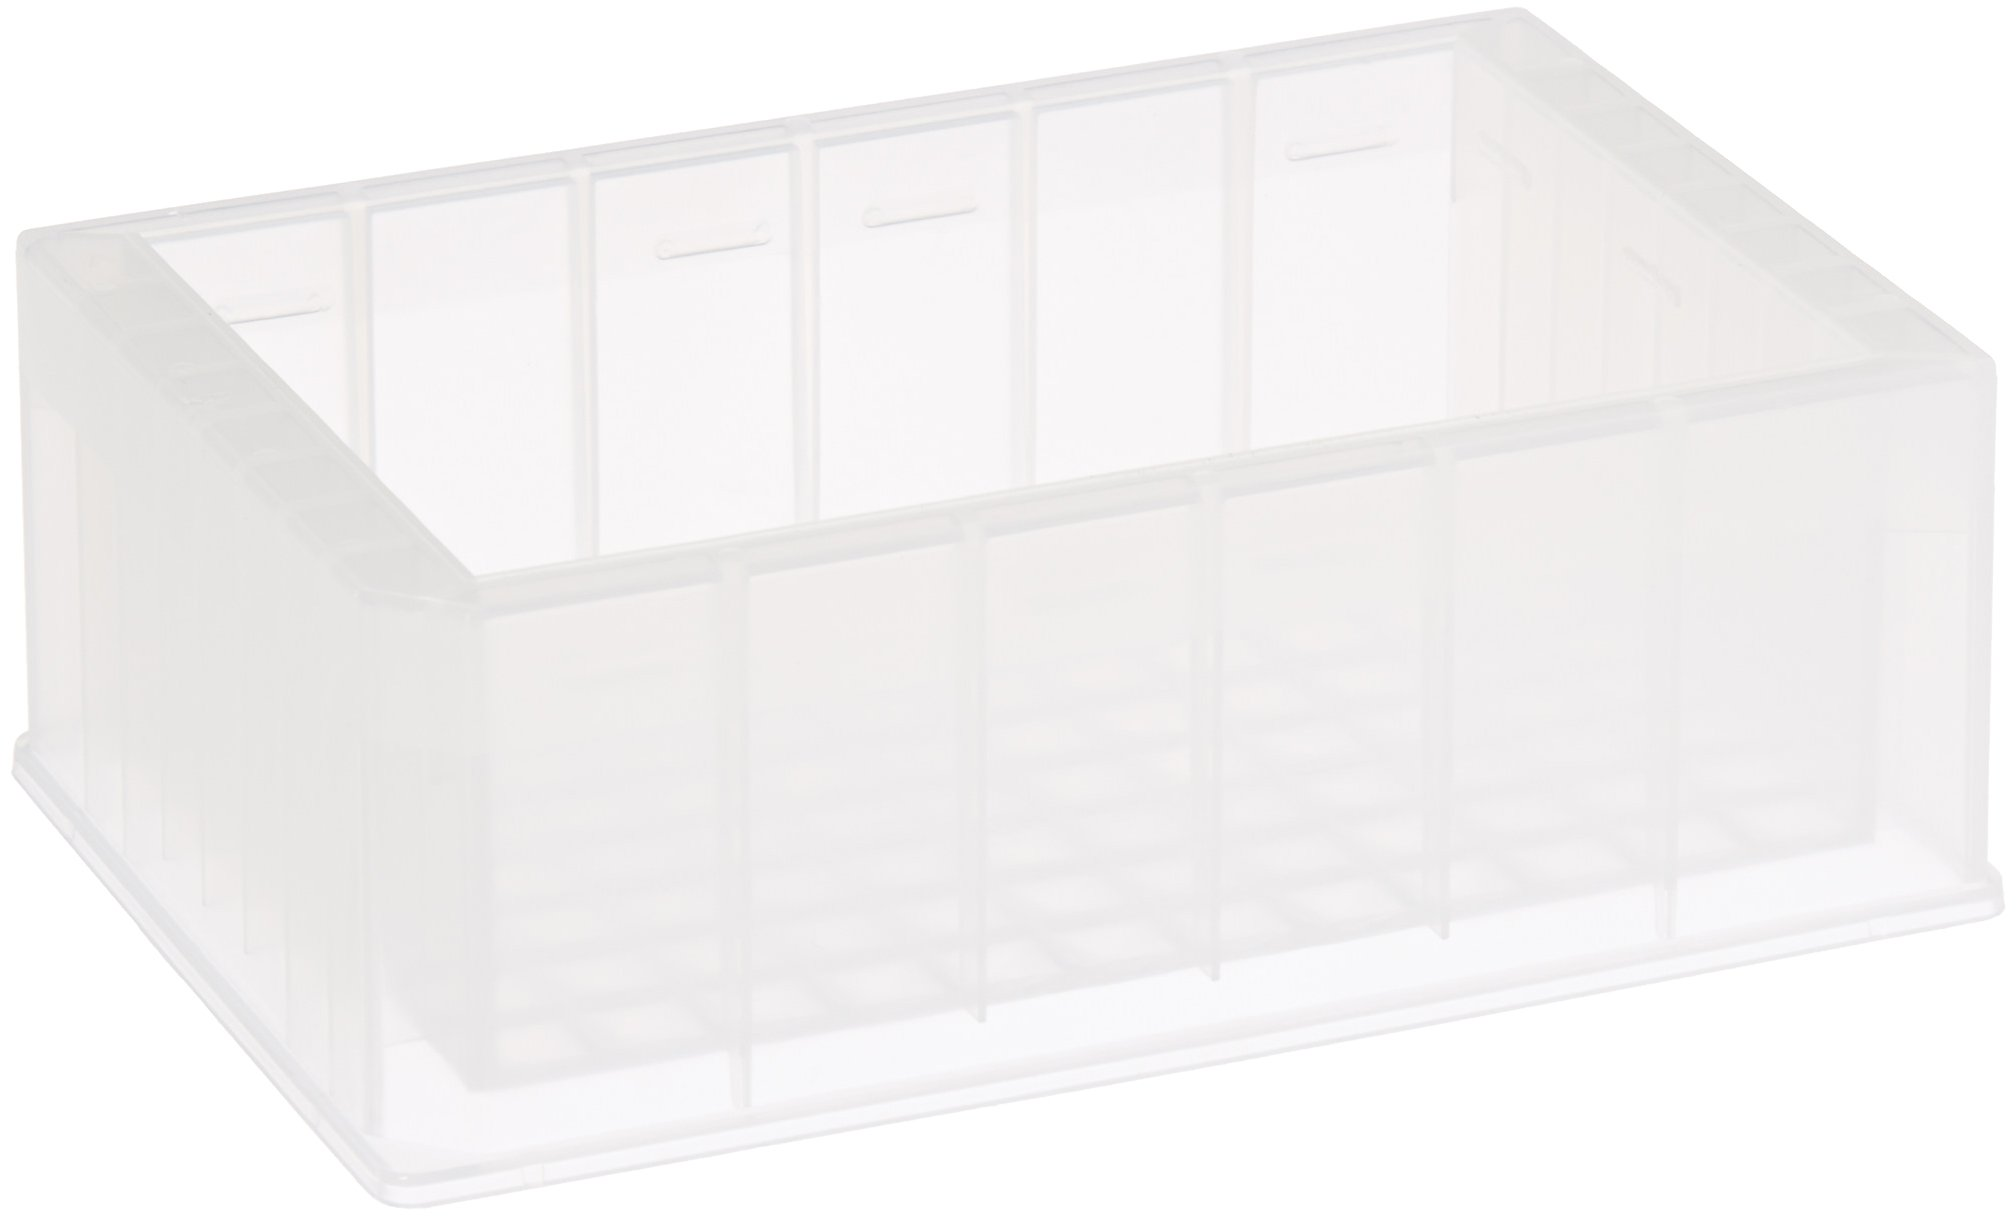 Axygen RES-SW96-HP Polypropylene Single Well High Profile Reagent Reservoir with 96-Bottom Trough, Non-Sterile, 240mL Capacity (Case of 25) by Axygen